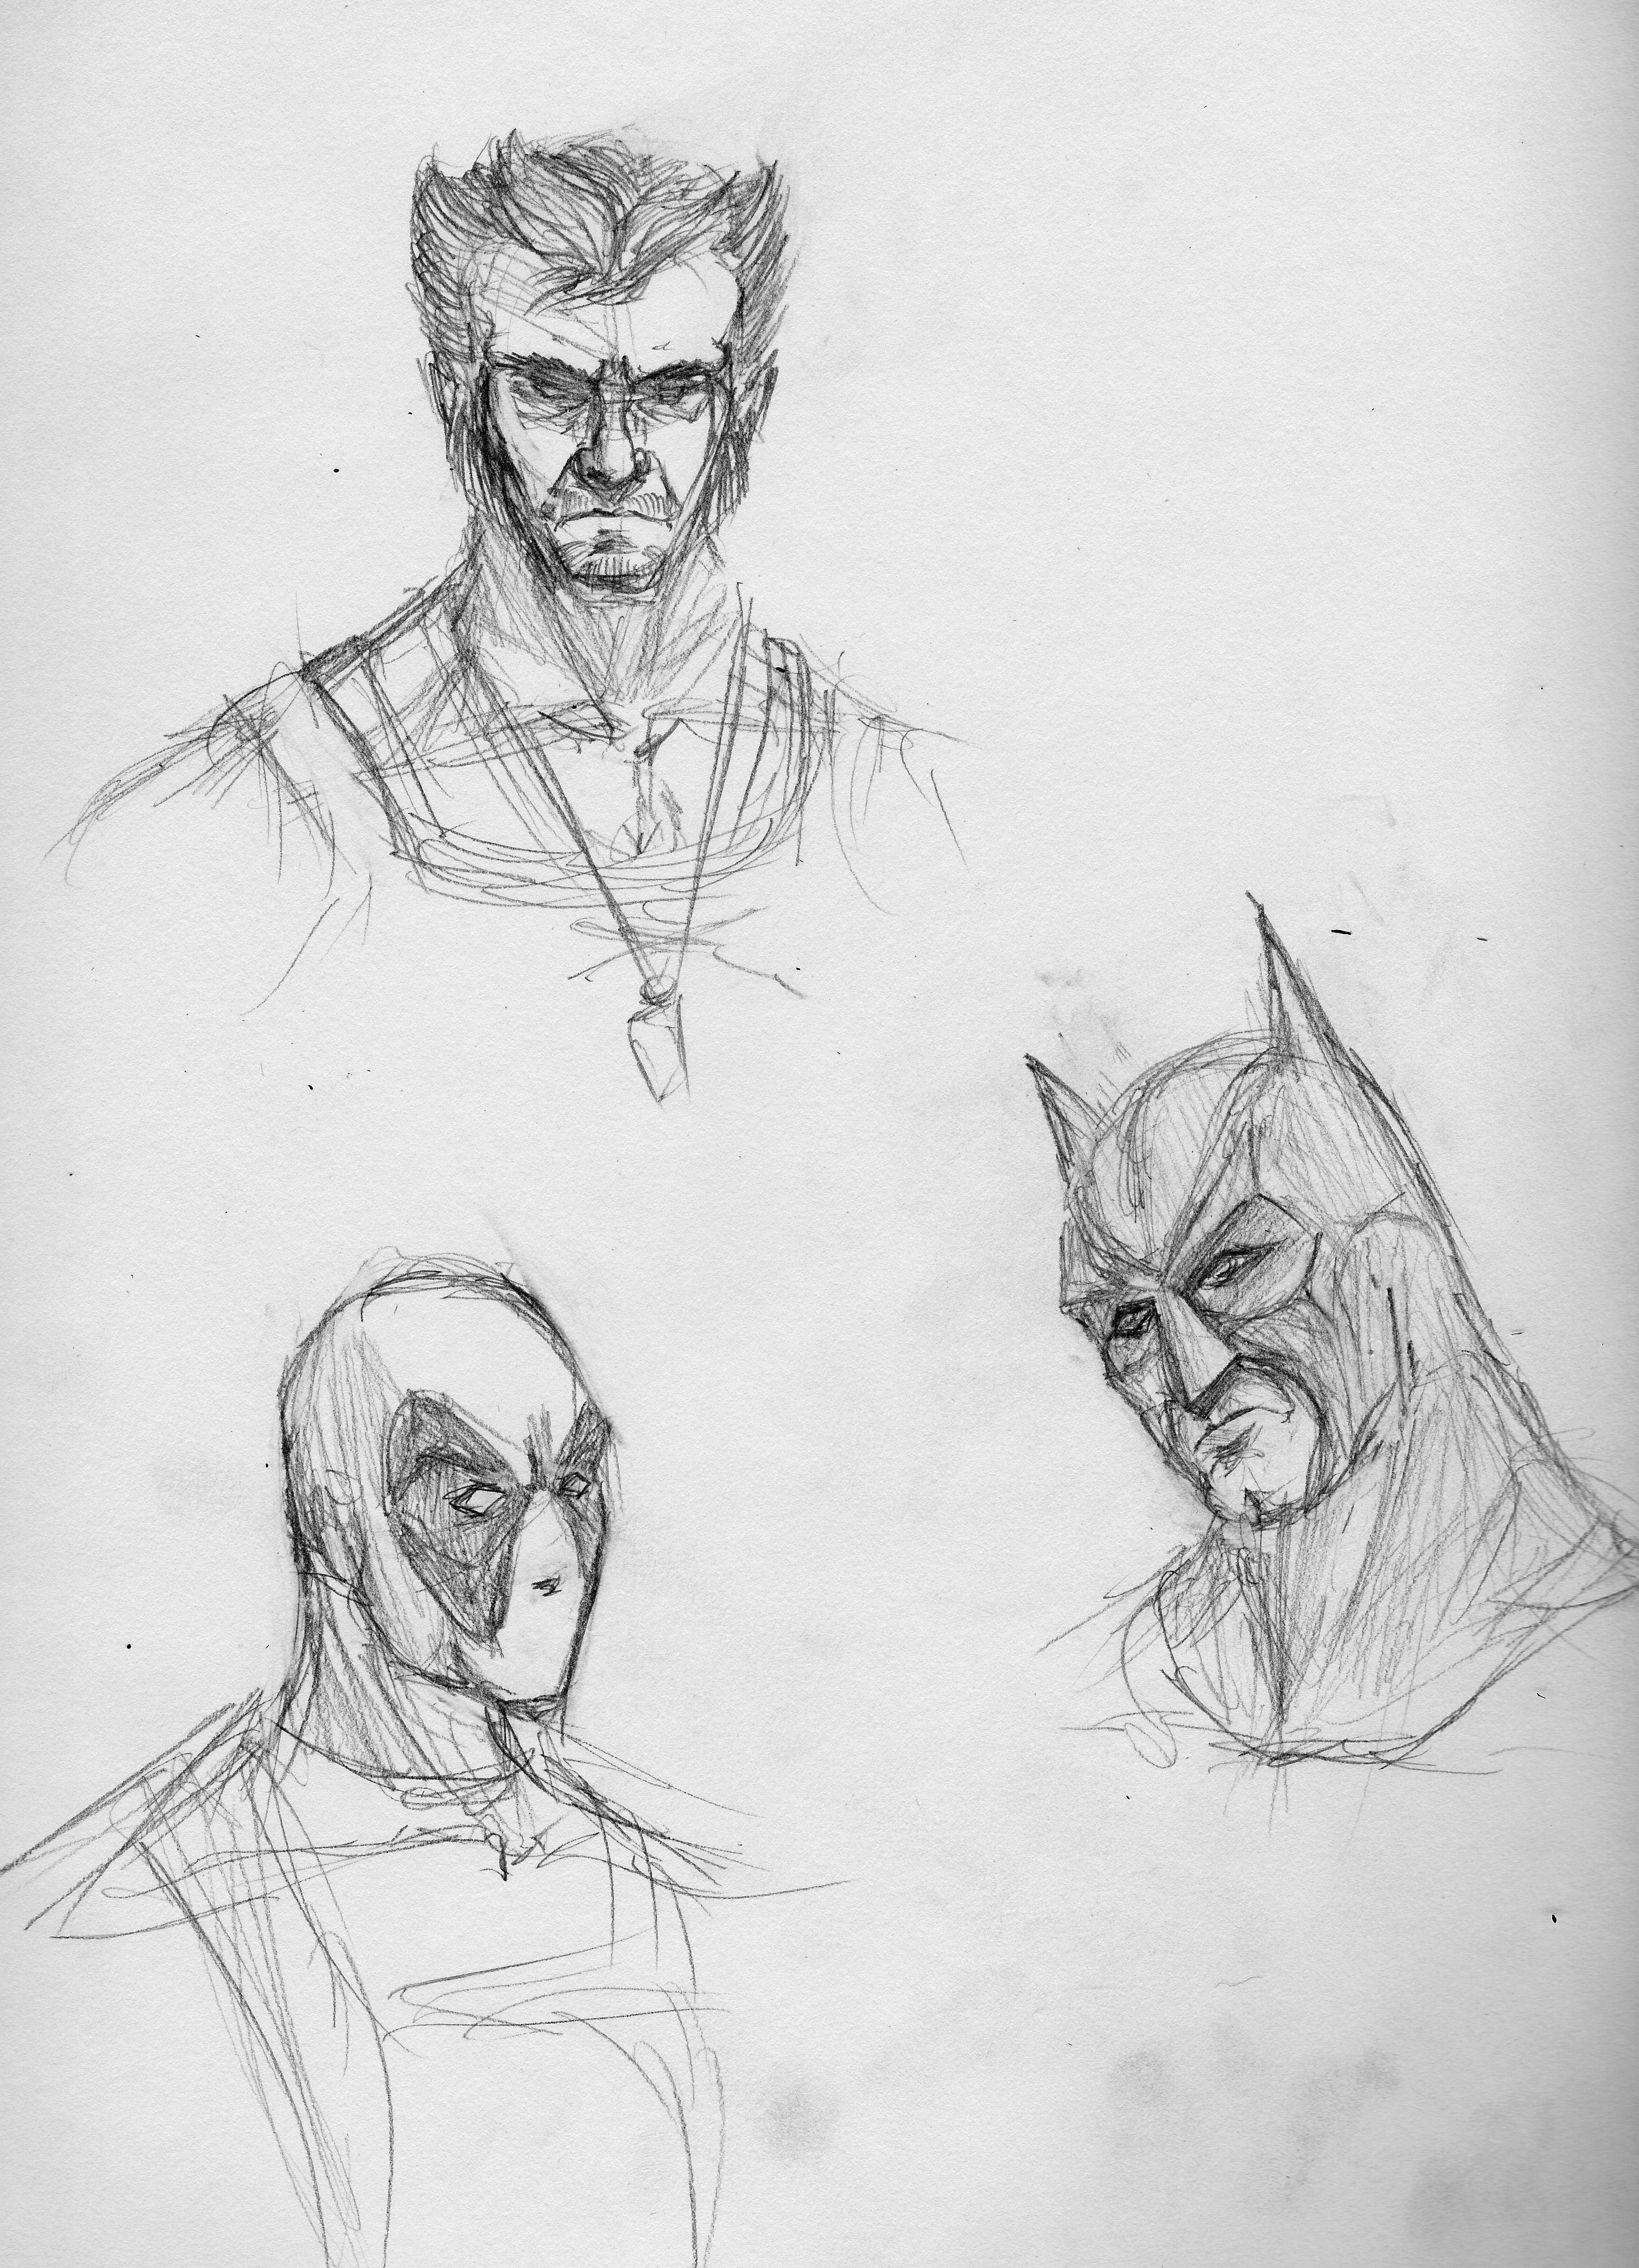 Superhero sketches by qwertyempire on deviantart for Super cool drawings